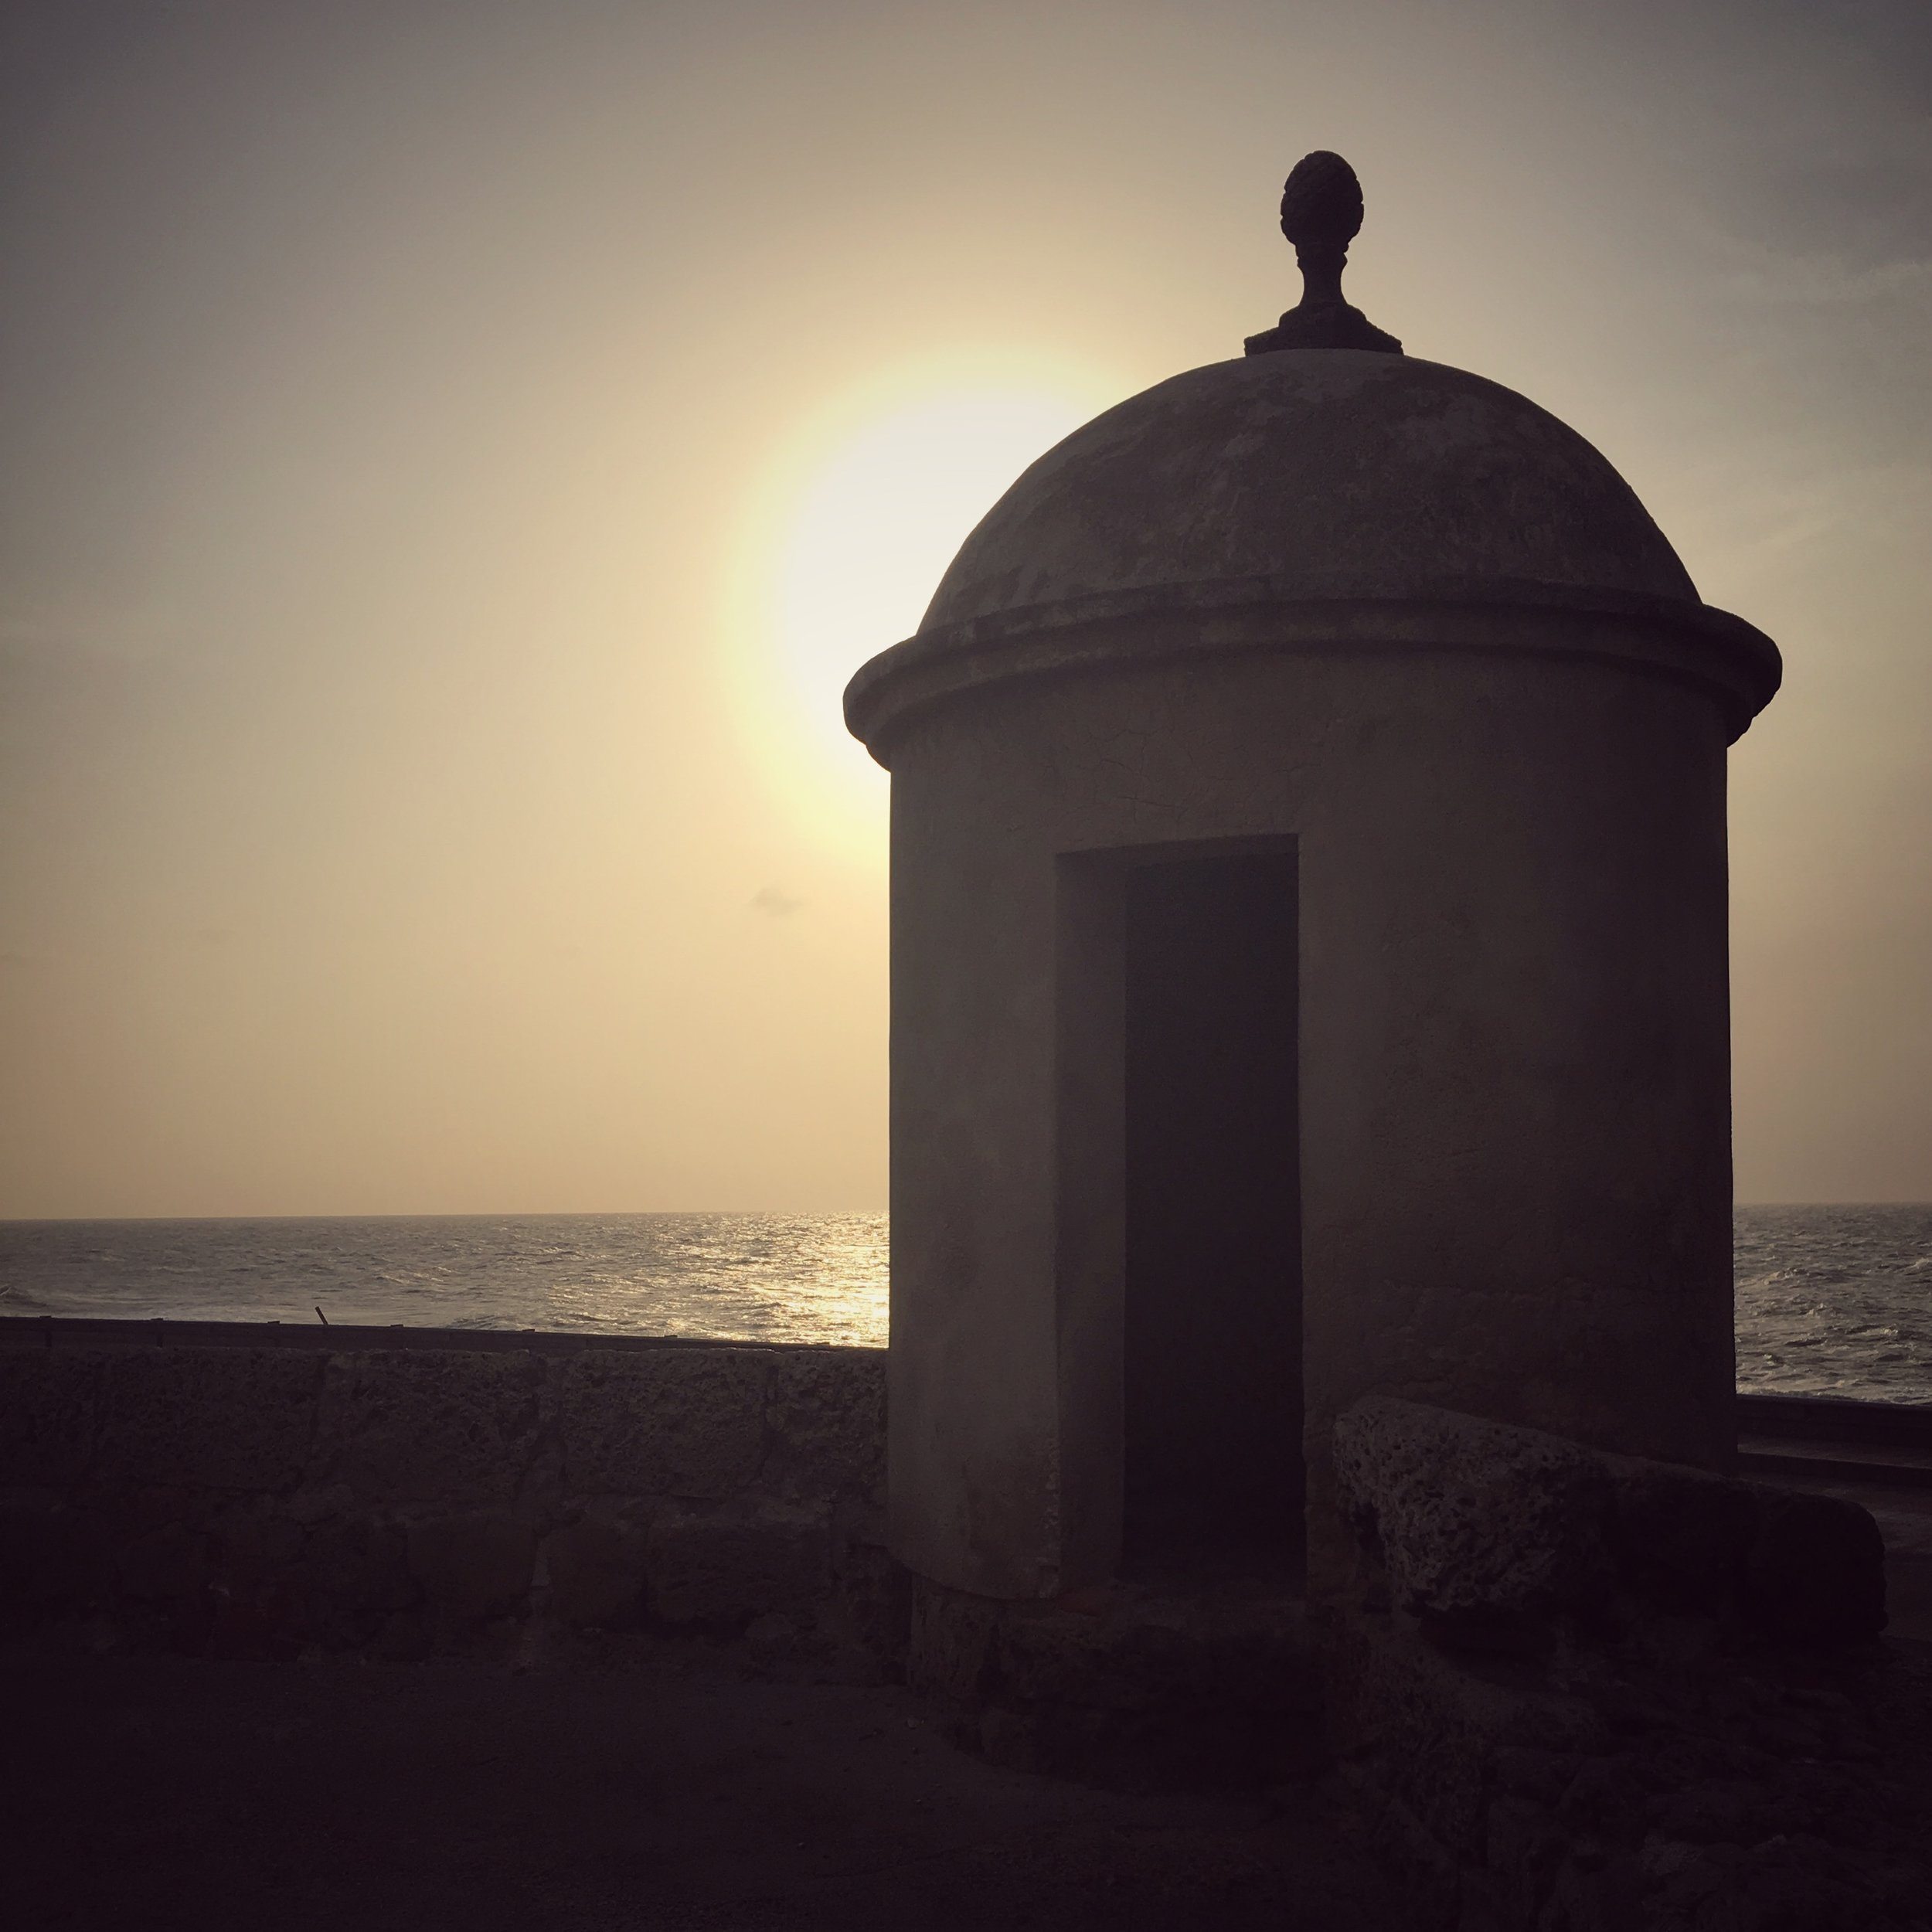 the cliche sunset Cartagena shot